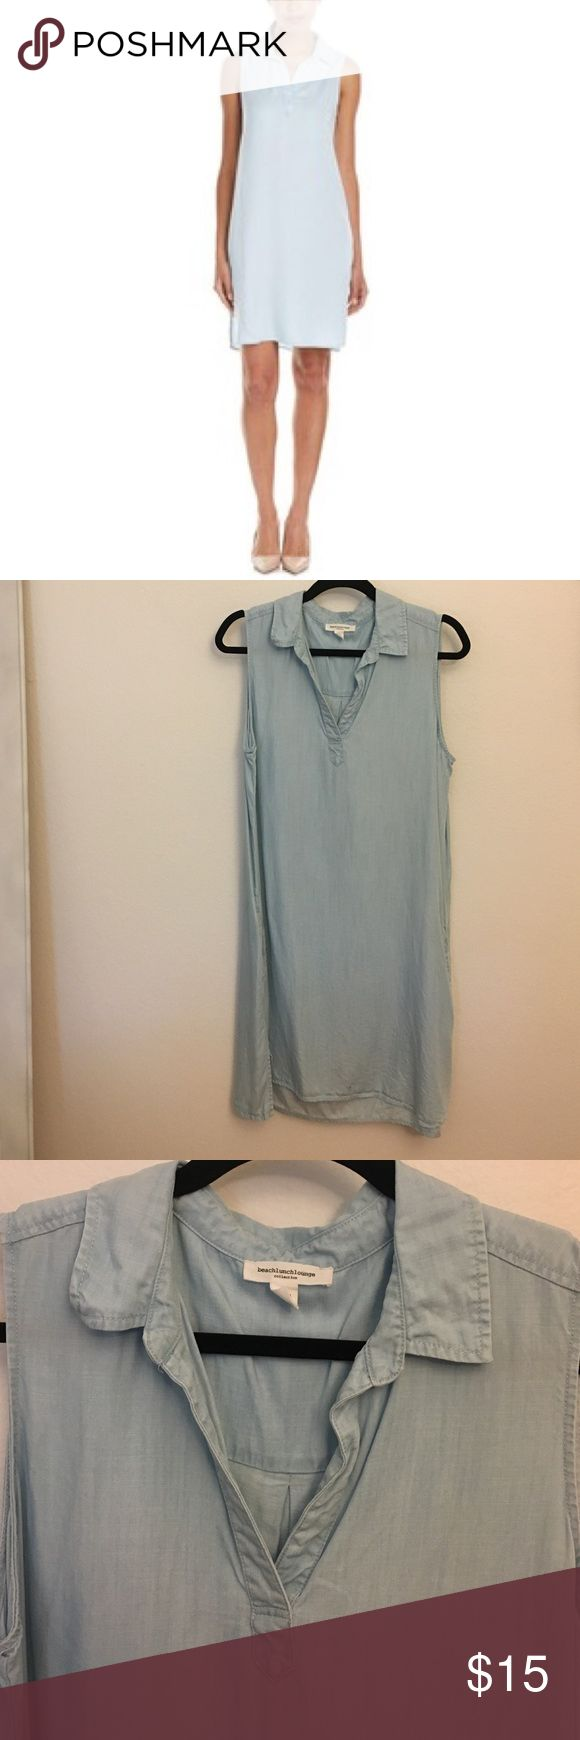 Beach lunch lounge denim shift dress Brand: beach lunch lounge.   Denim shift dress with side pockets.  Size large.  Never worn, no tags. Very soft brushed denim. beach lunch lounge Dresses